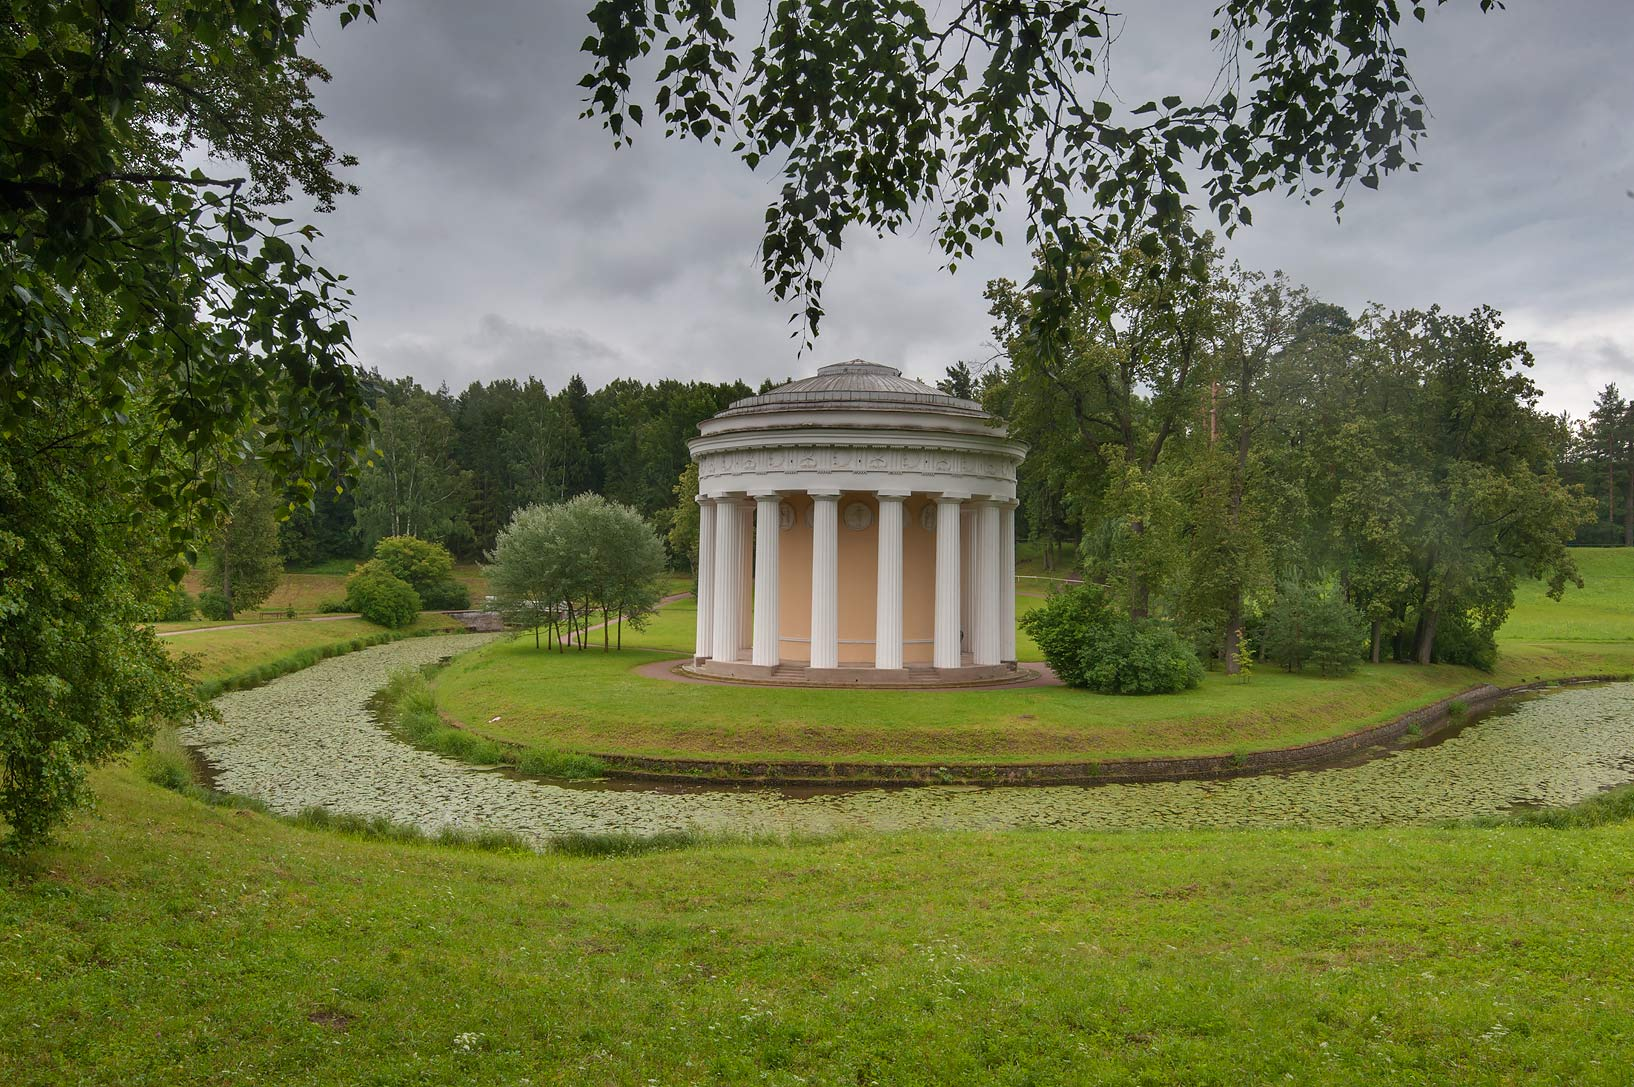 Friendship Temple (Khram Druzhby) in Pavlovsk...a suburb of St.Petersburg, Russia